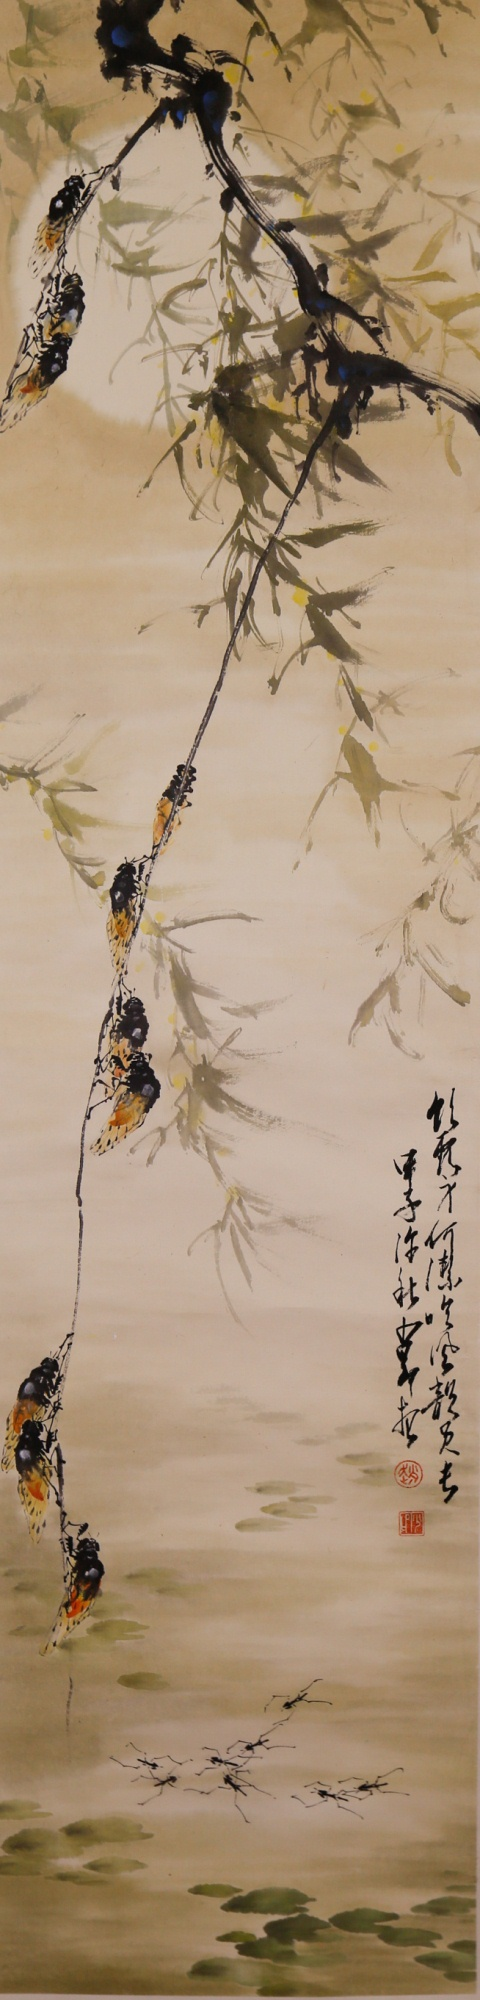 Zhao Shao'ang 1905-1998 Watercolour on Paper Scroll